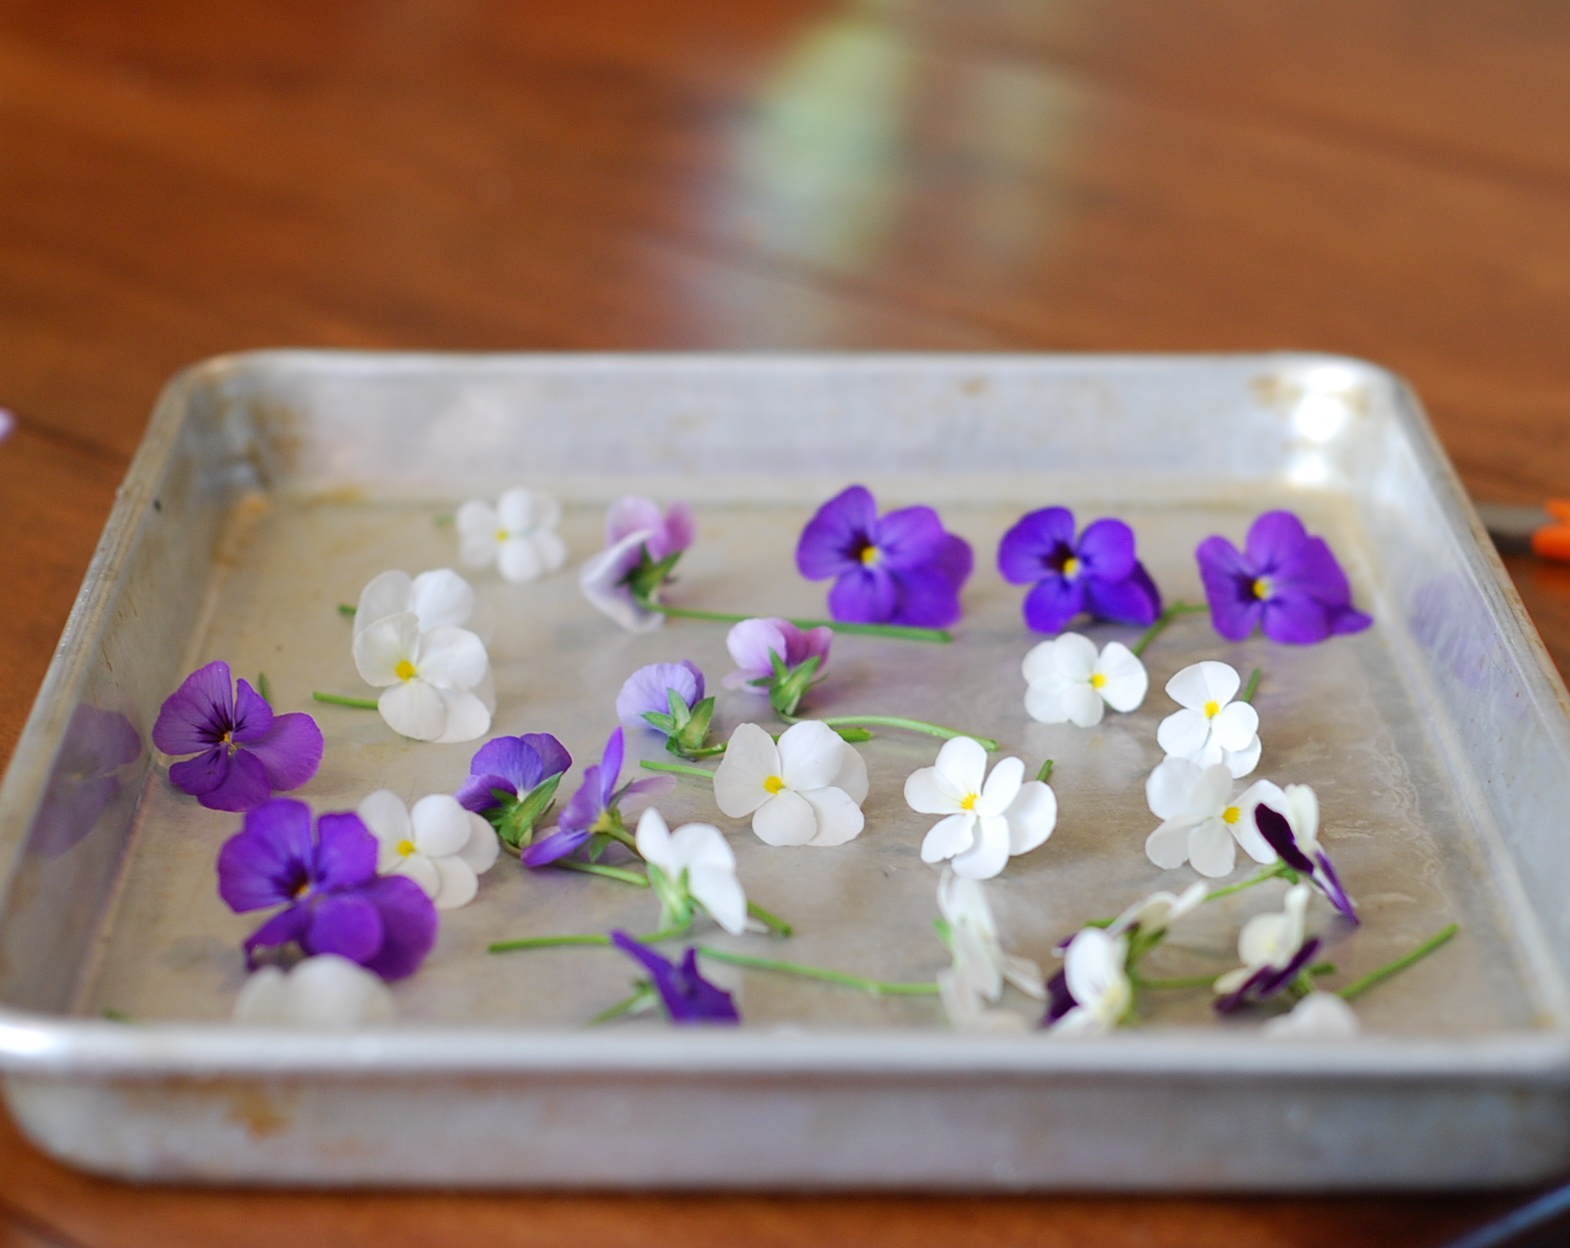 Decorating A Cake With Edible Flowers : Marzipan: Sugared Edible Flowers for Cake Decorating